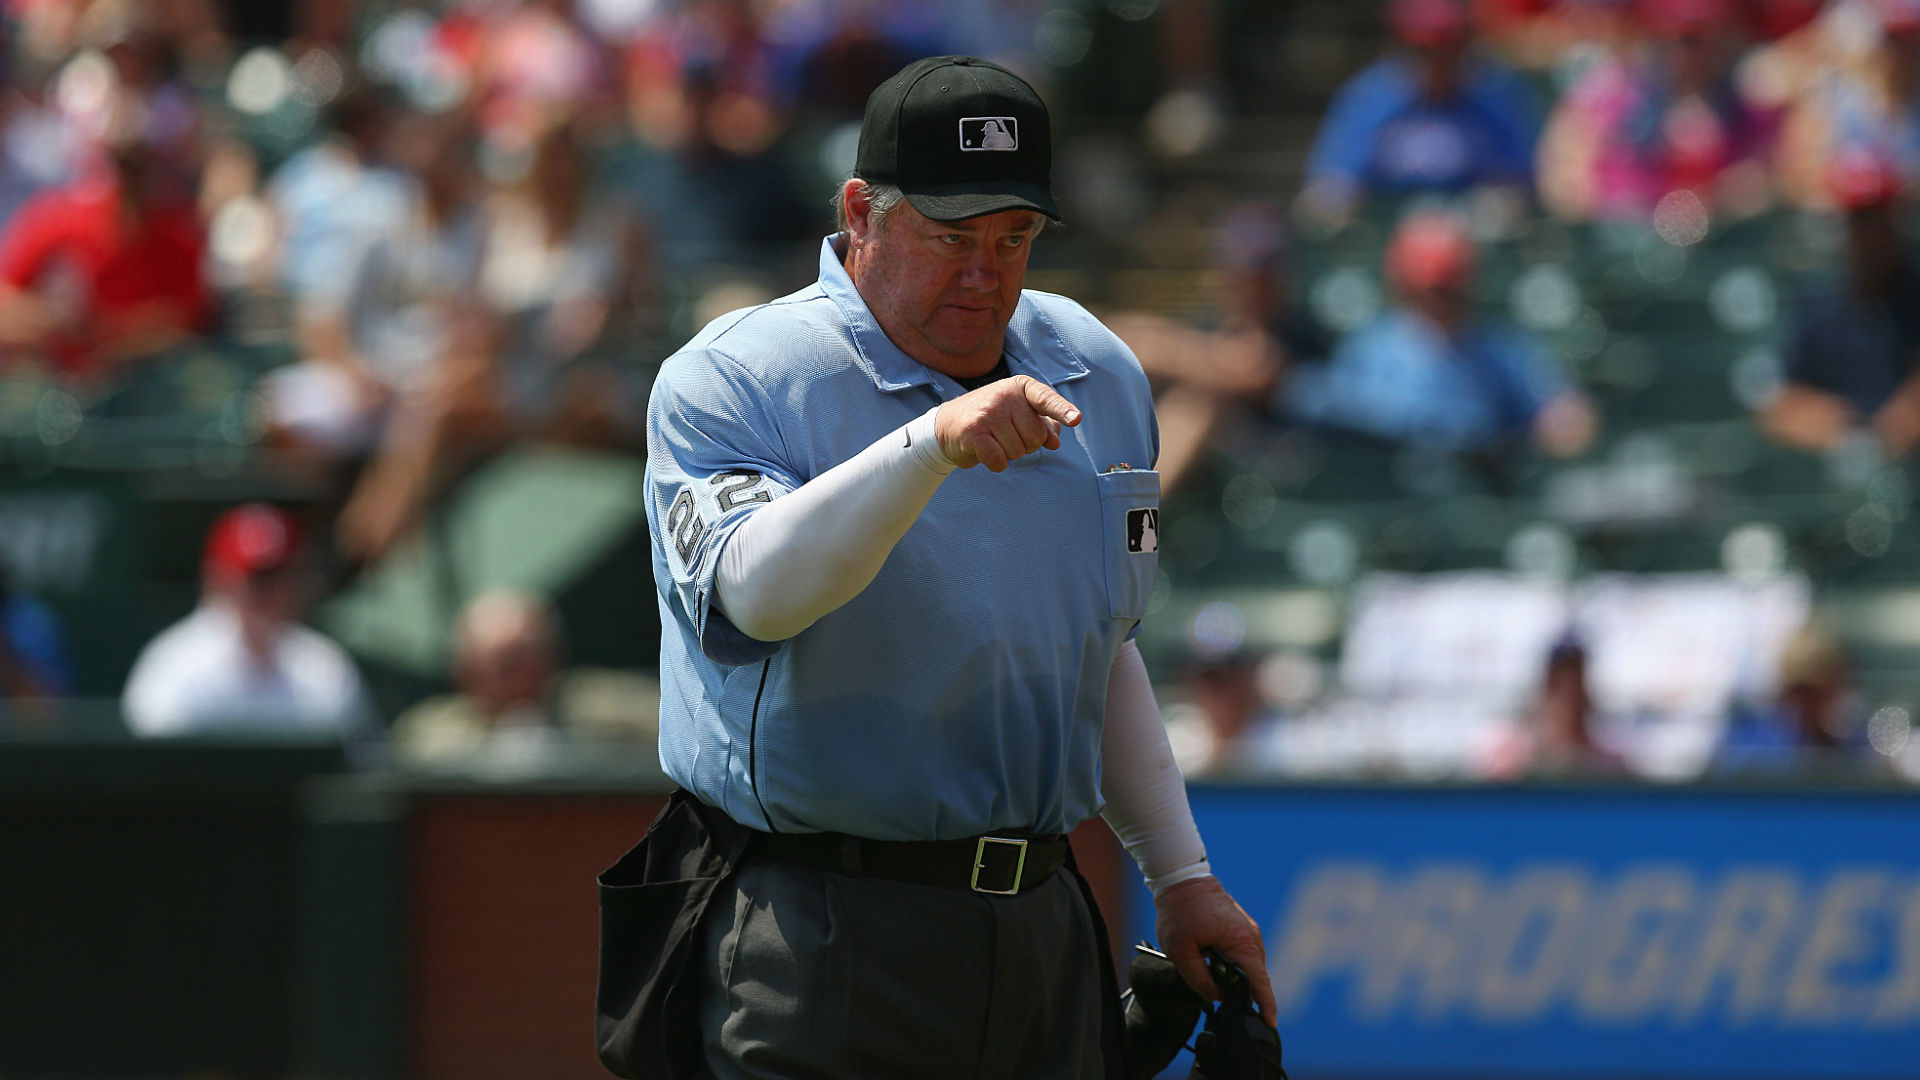 Umpire West suspended three games